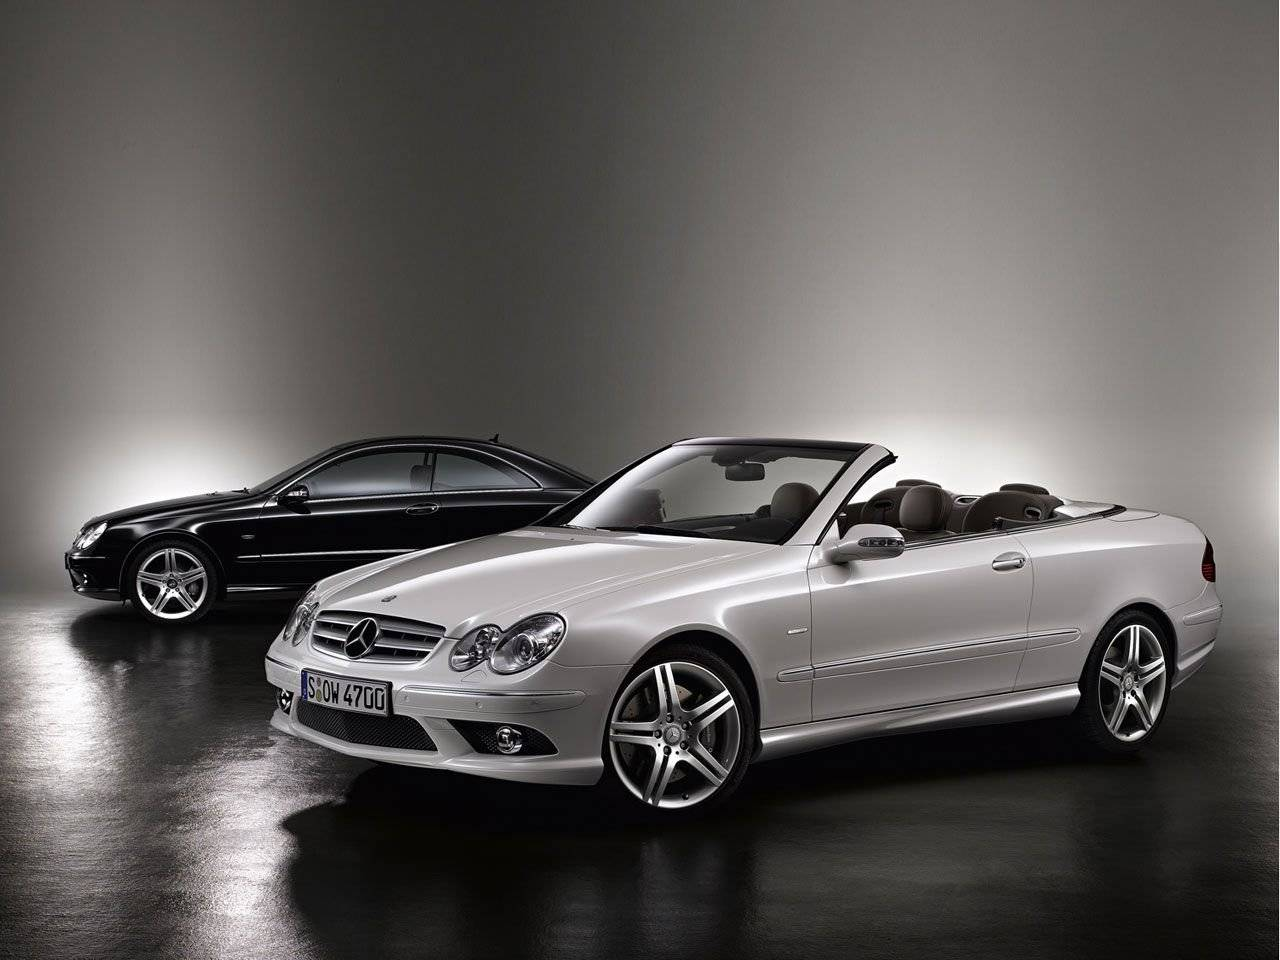 Mercedes Benz Clk Grand Edition Amg Look A Like